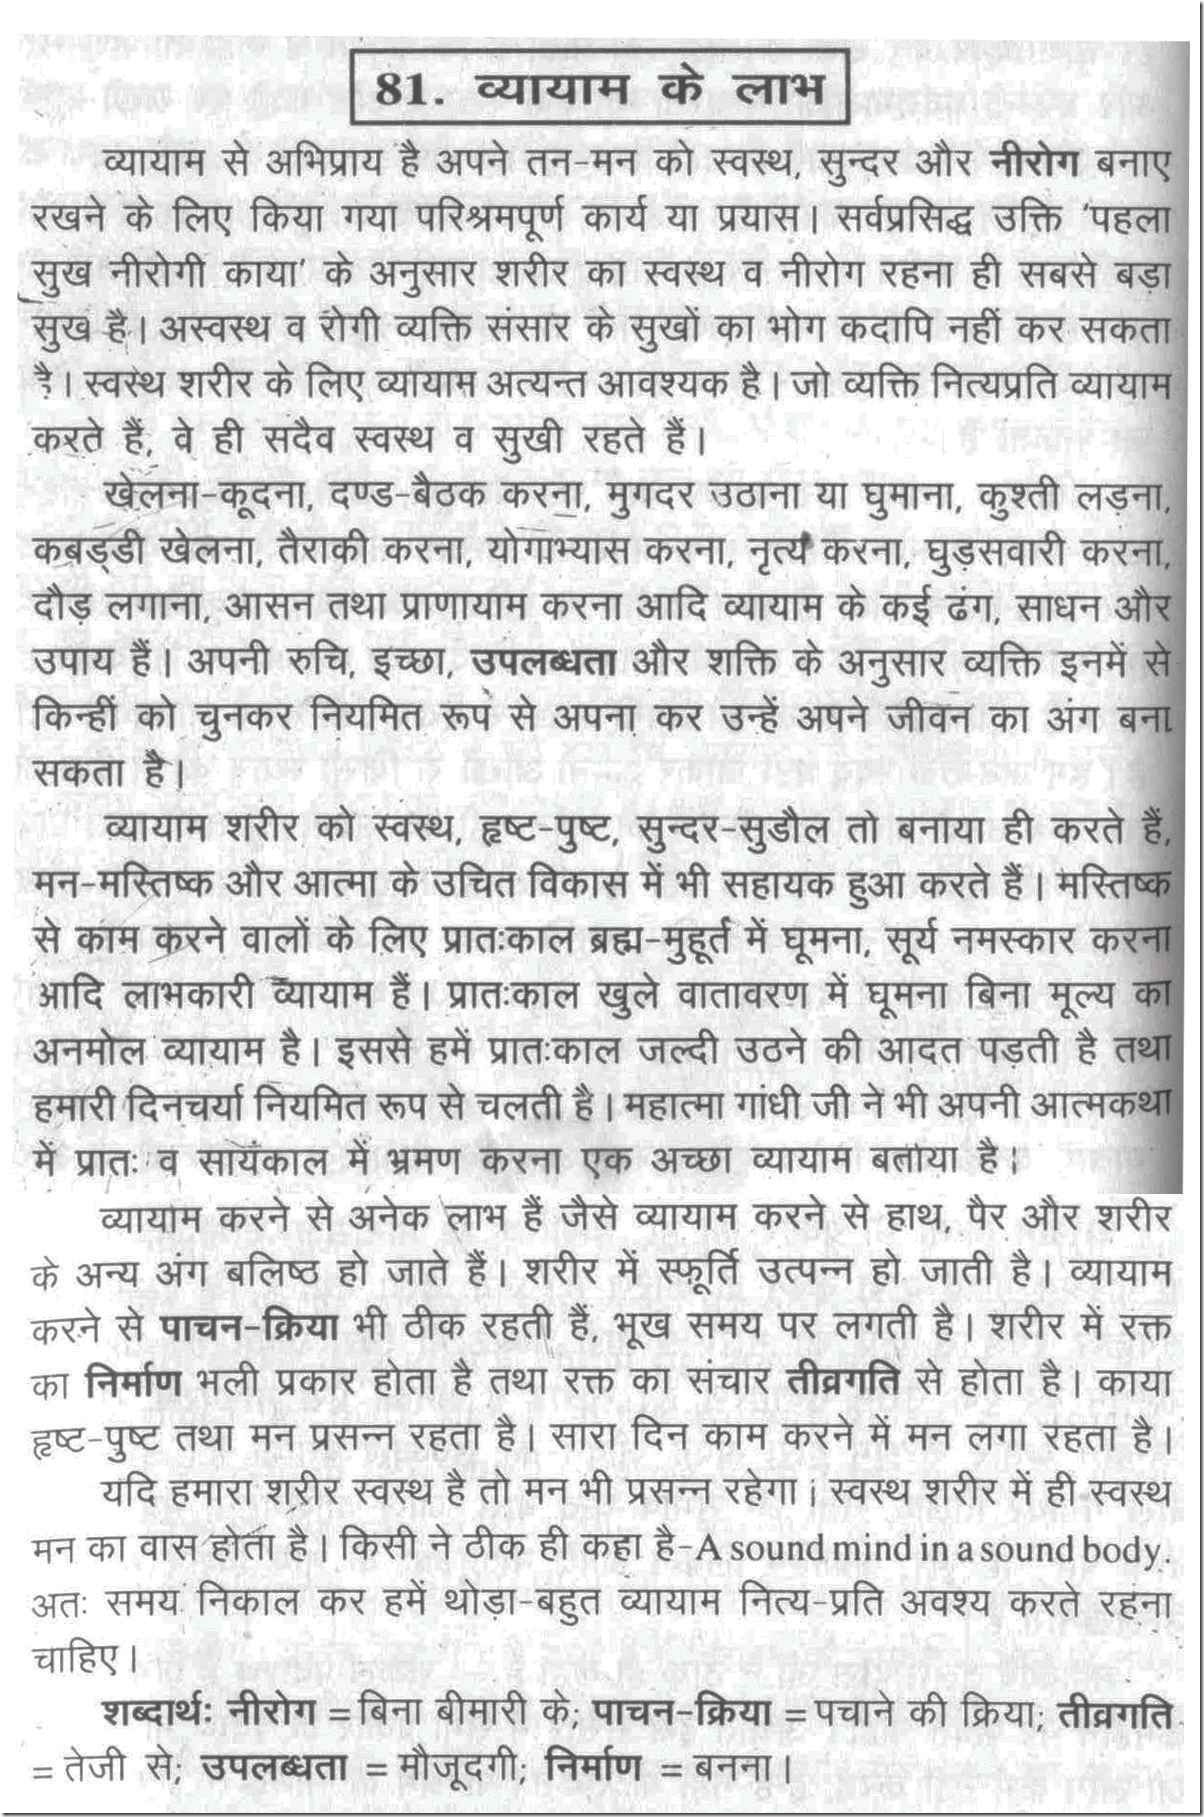 011 2563478896 Essay On Health And Fitness Through Food Good Habits In Hindi Exceptional Habit Wikipedia Eating Full